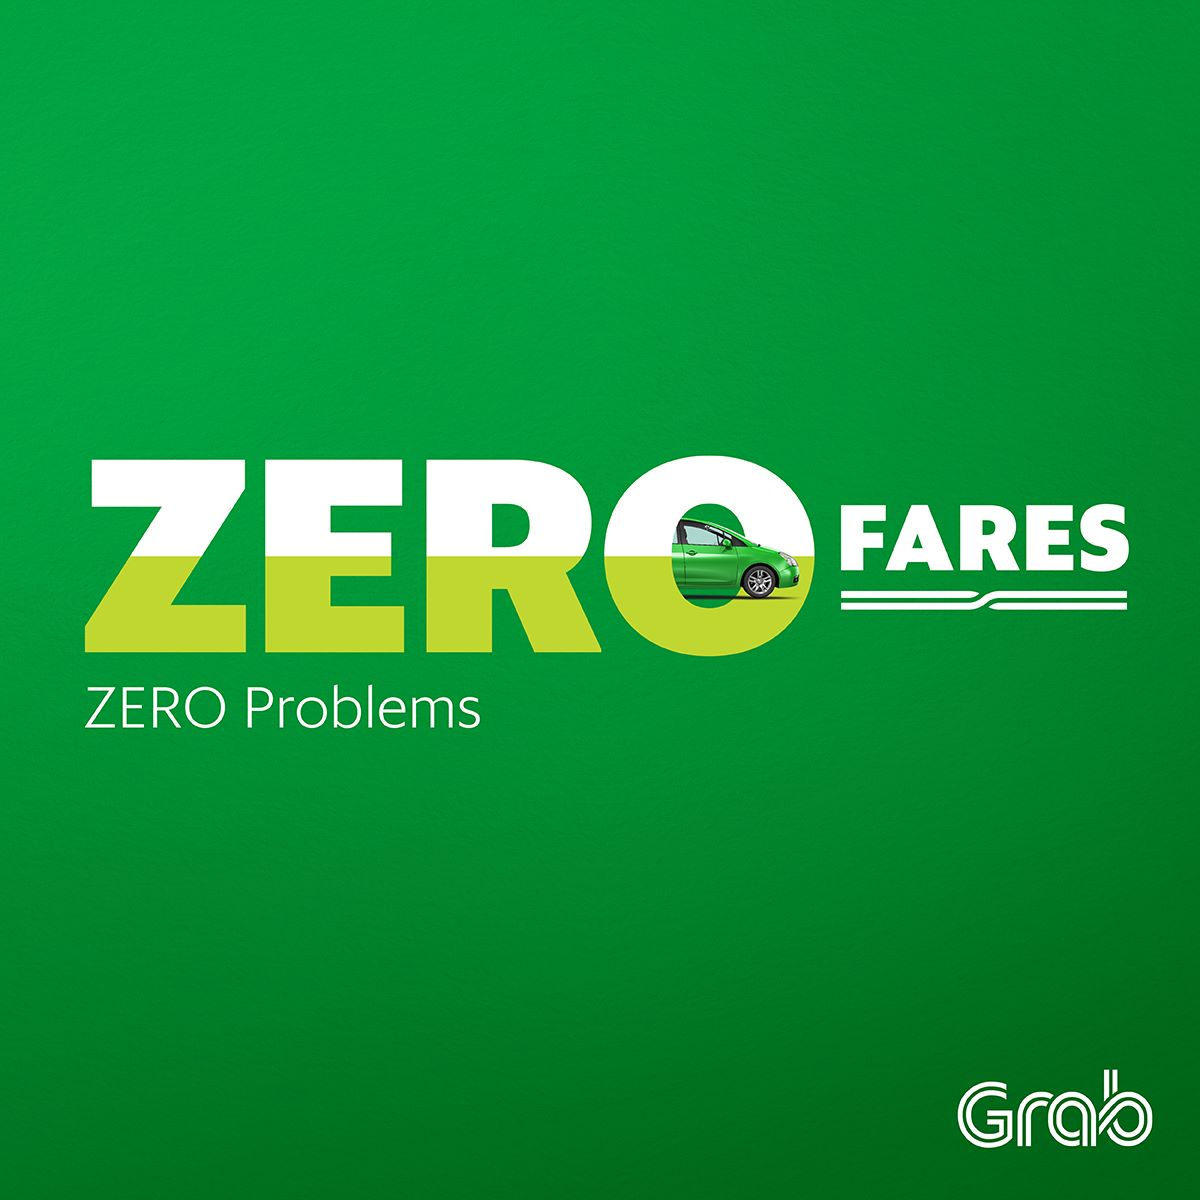 Grab Promo Code for FREE GrabCar/GrabTaxi Rides Under RM7 (Limited